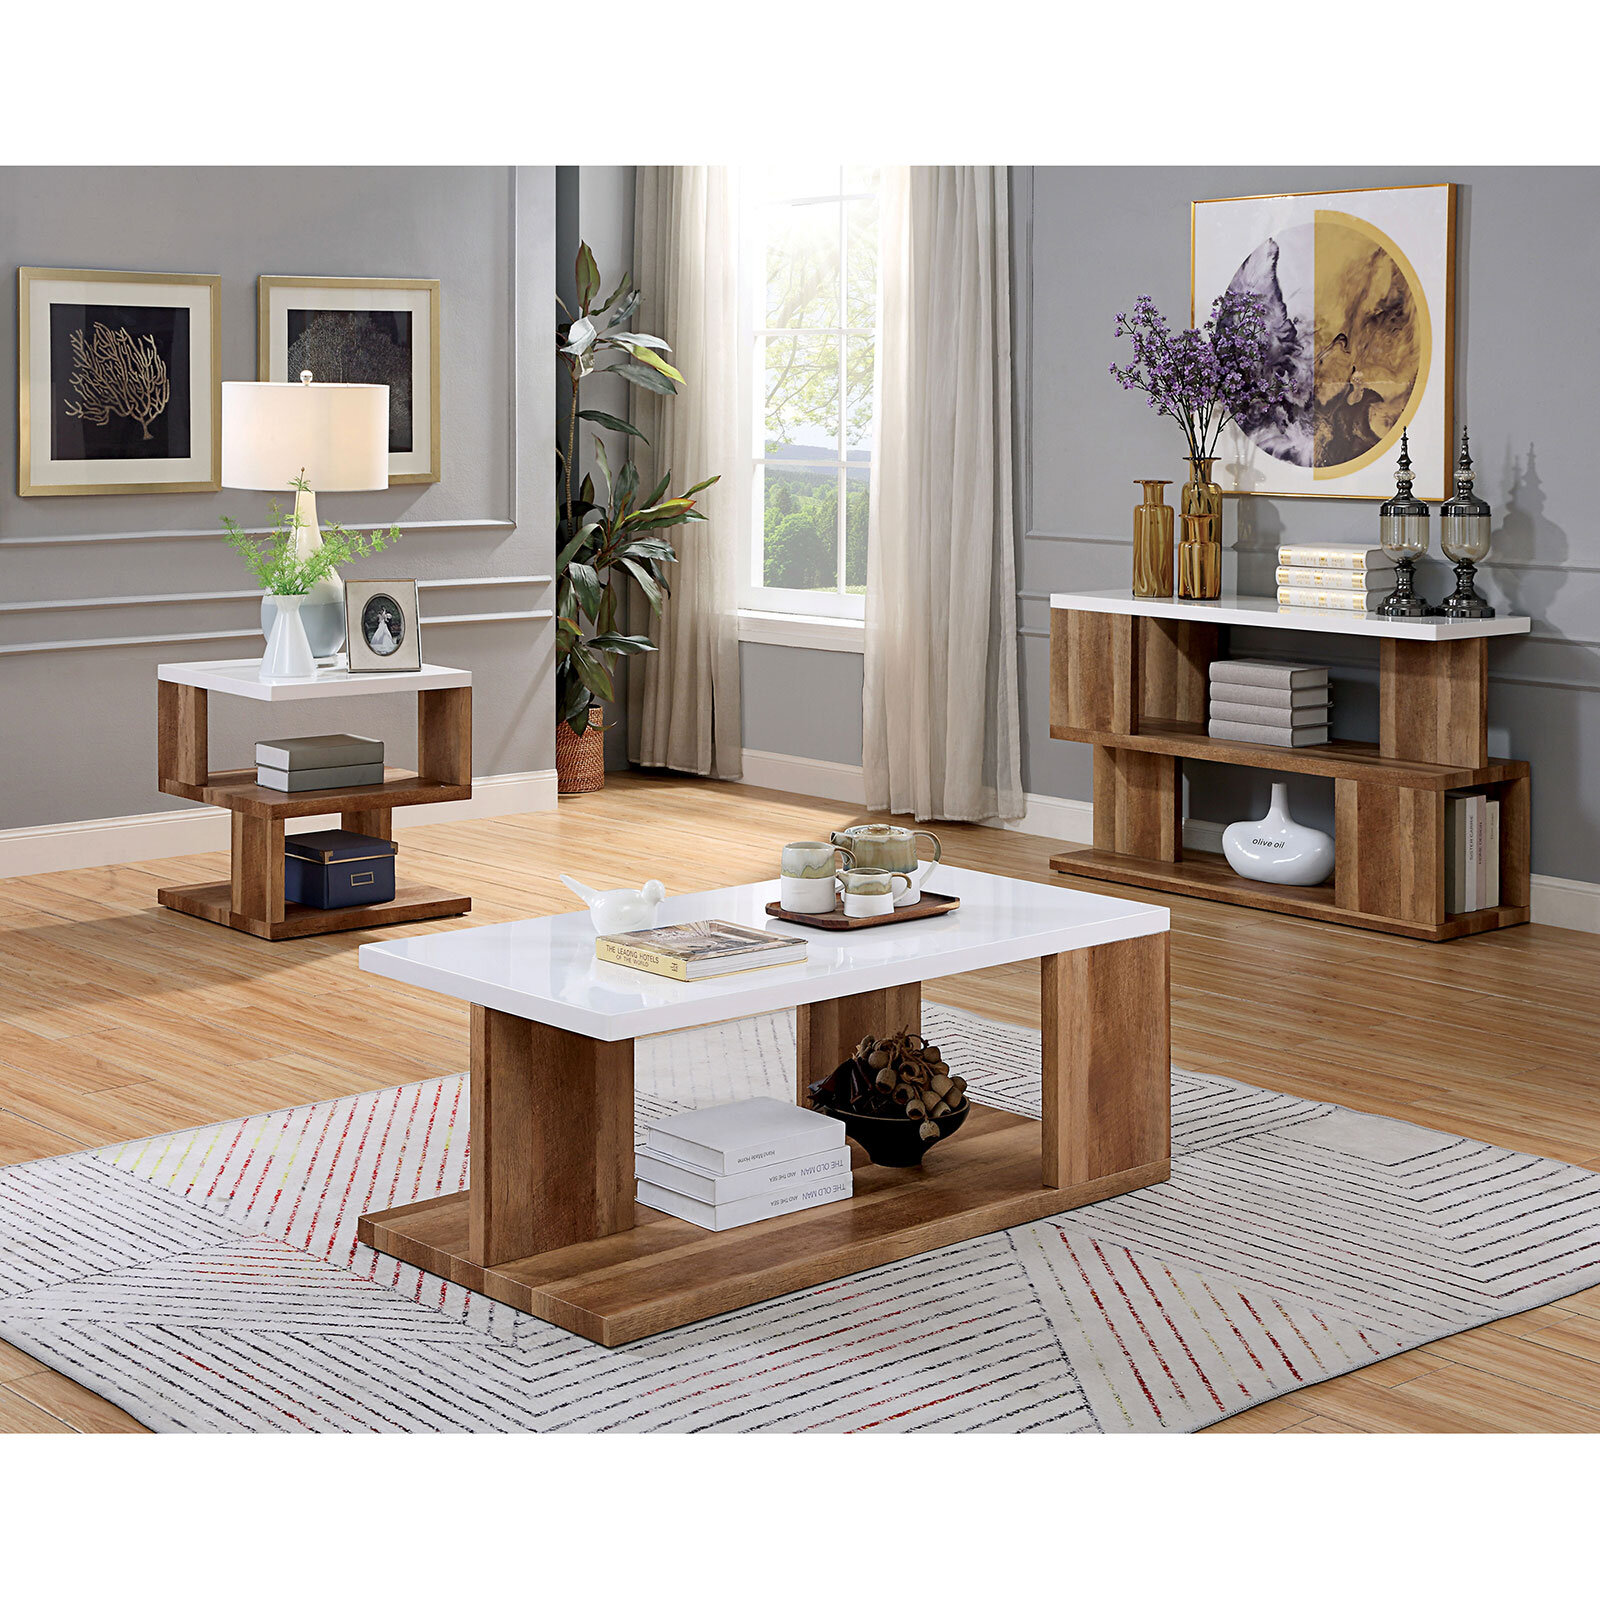 Union Rustic Coffee Table Sets You Ll Love In 2021 Wayfair Ca